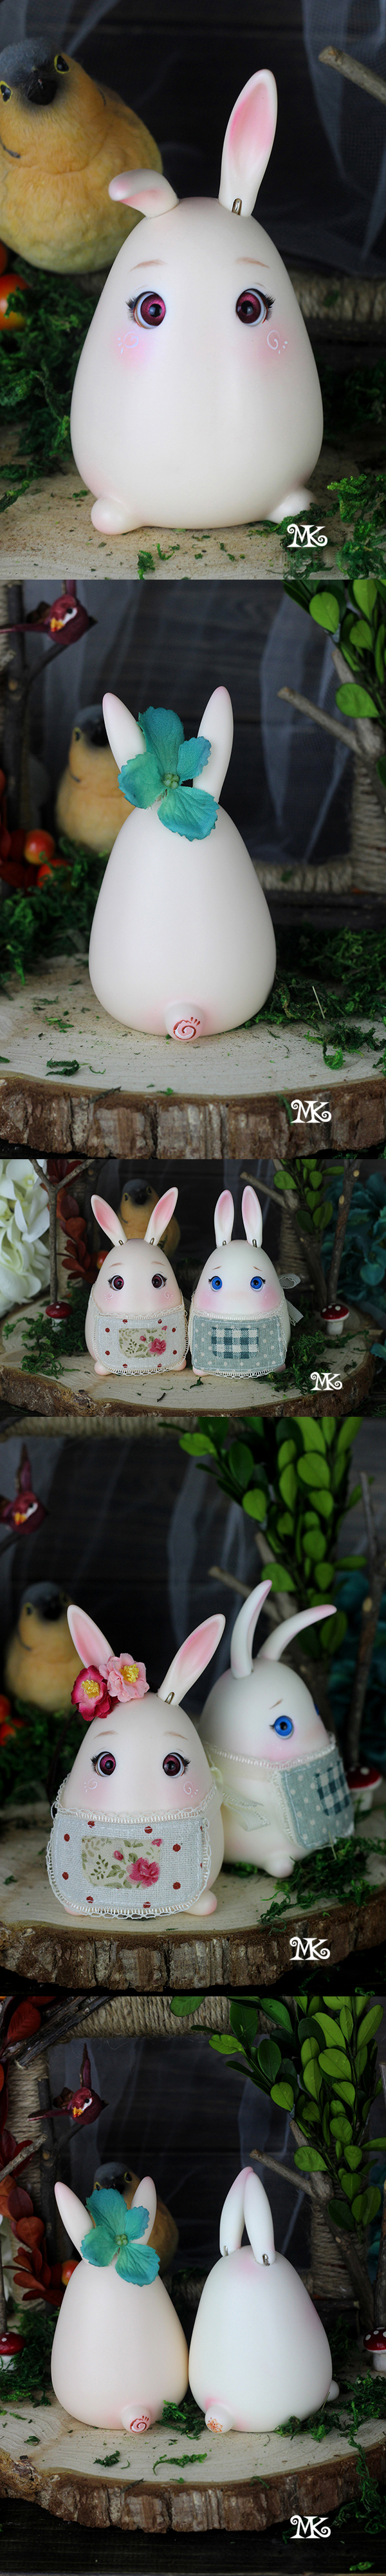 BJD's pet Pinky Rabbit Ball-jointed doll